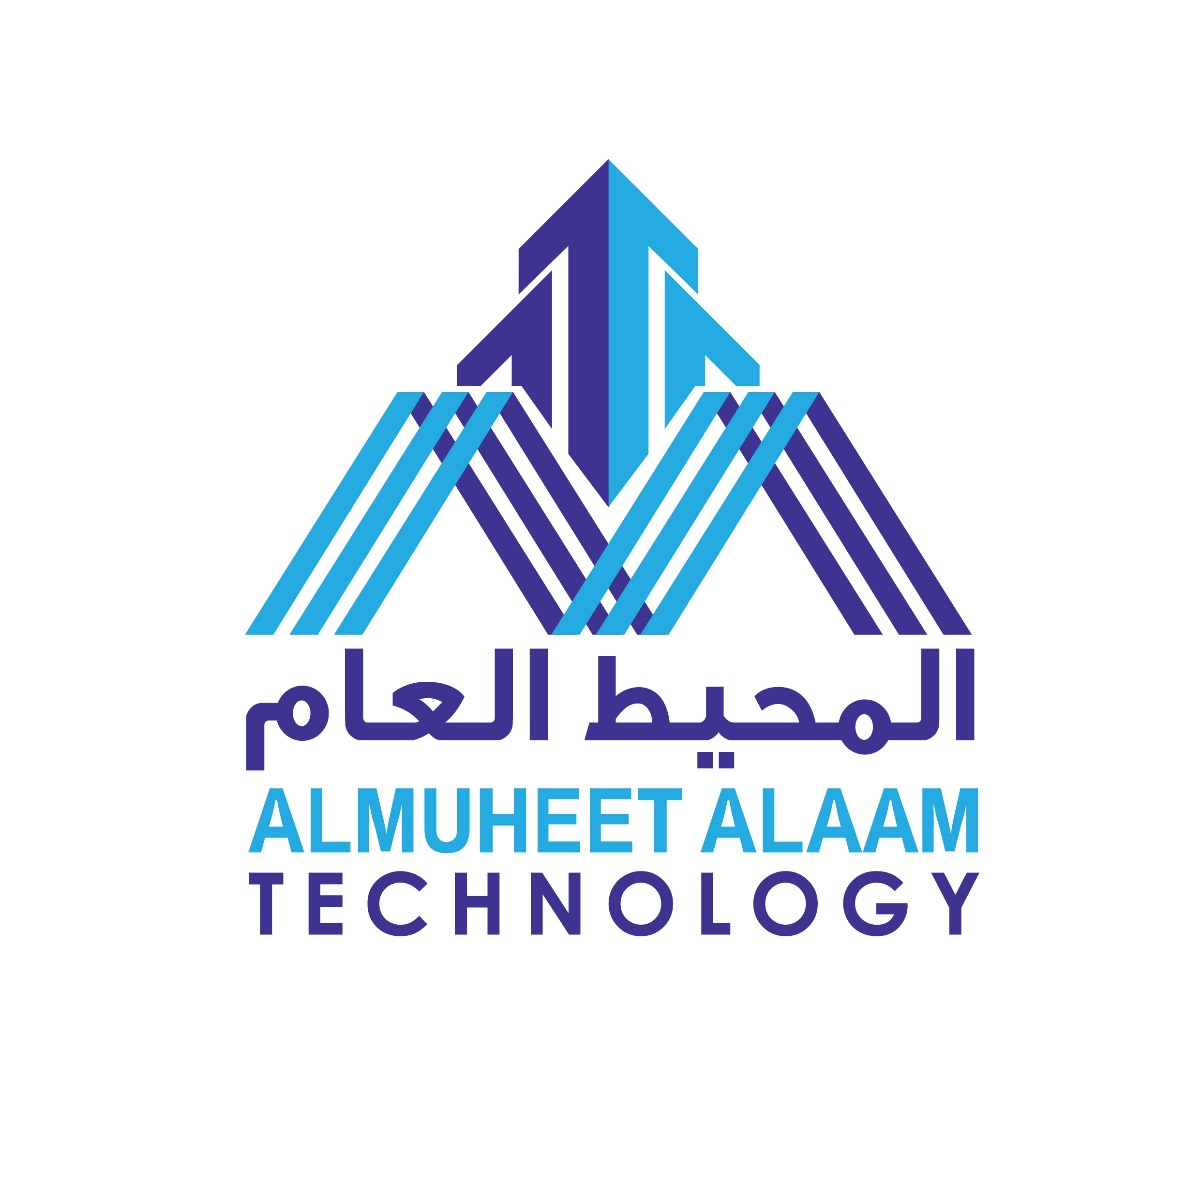 Al Muheet Al Aam Technology